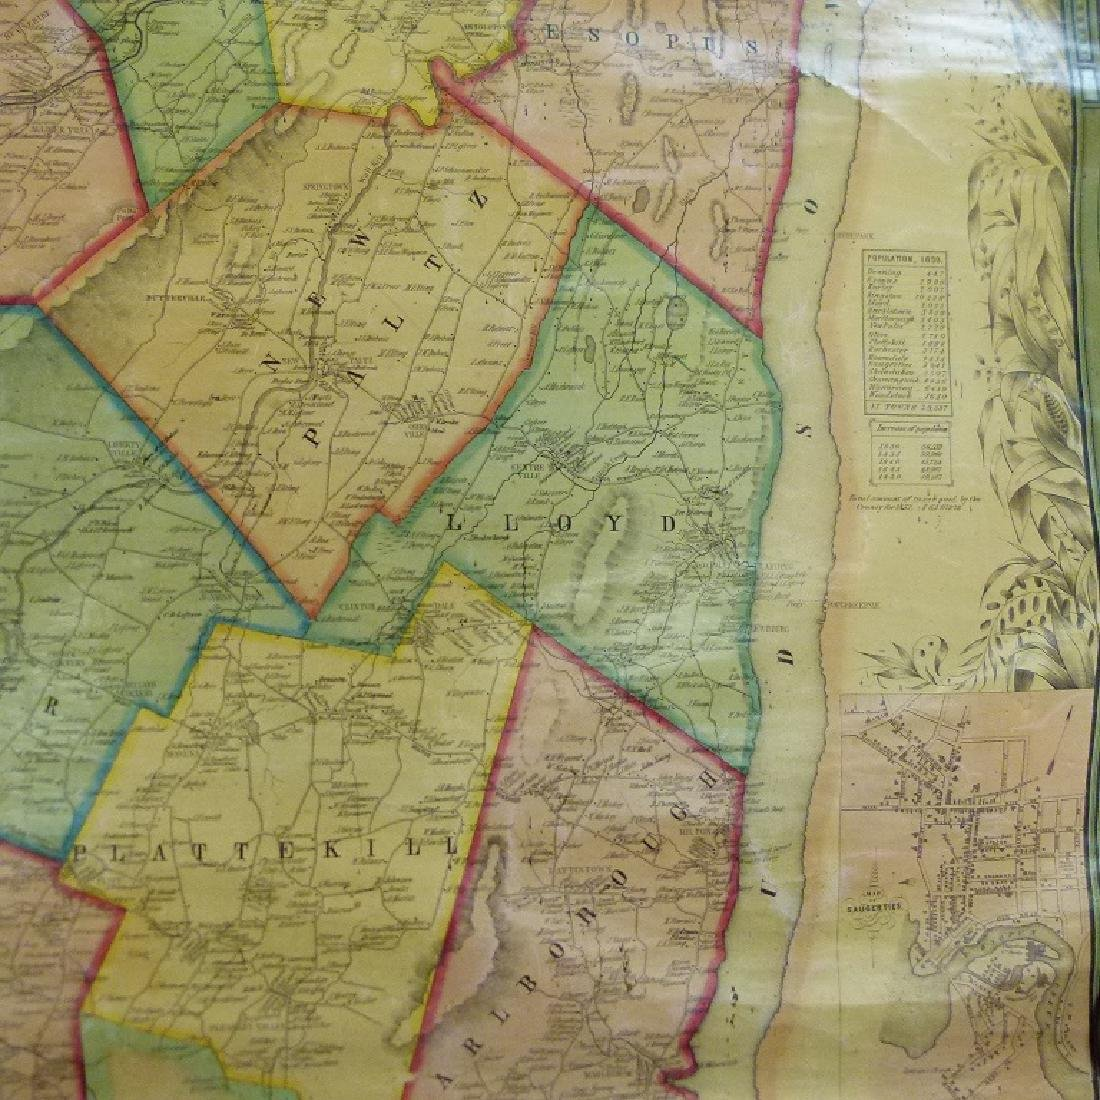 MAP OF ULSTER COUNTY NEW YORK, 1853 - 8